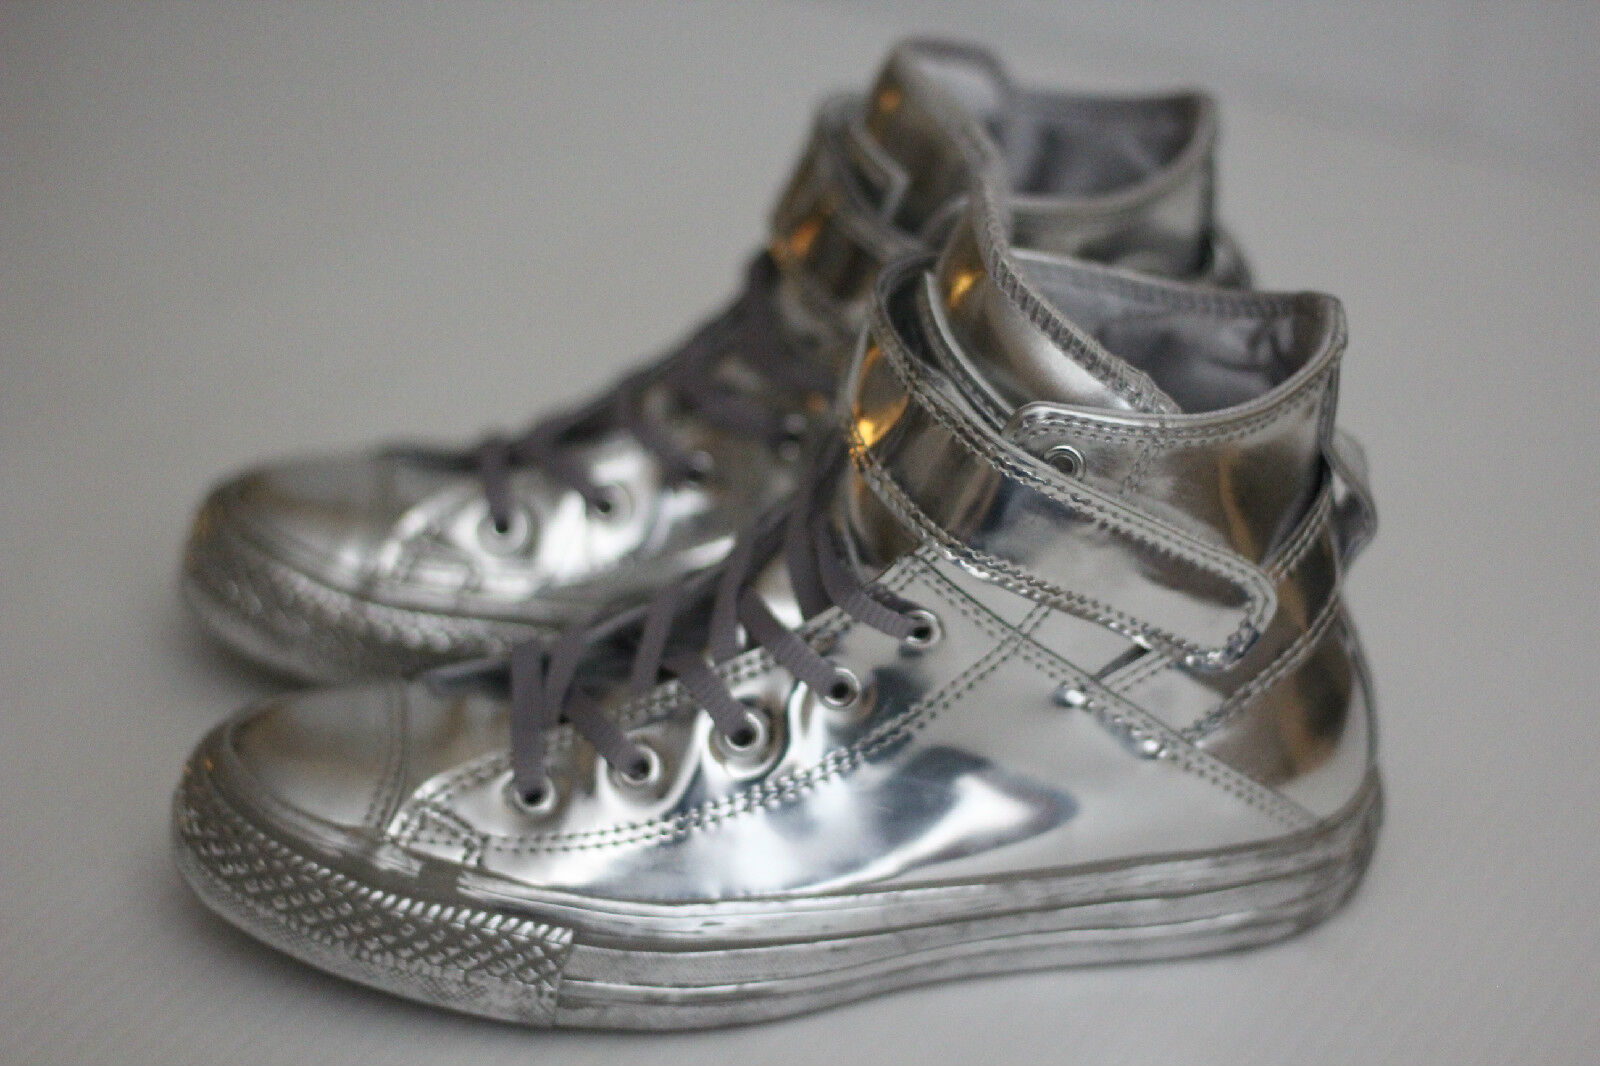 NEW Converse Chuck Taylor All Star Brea HI 6US Top Metallic Chrome Silver 6US HI (Y66) ba682e